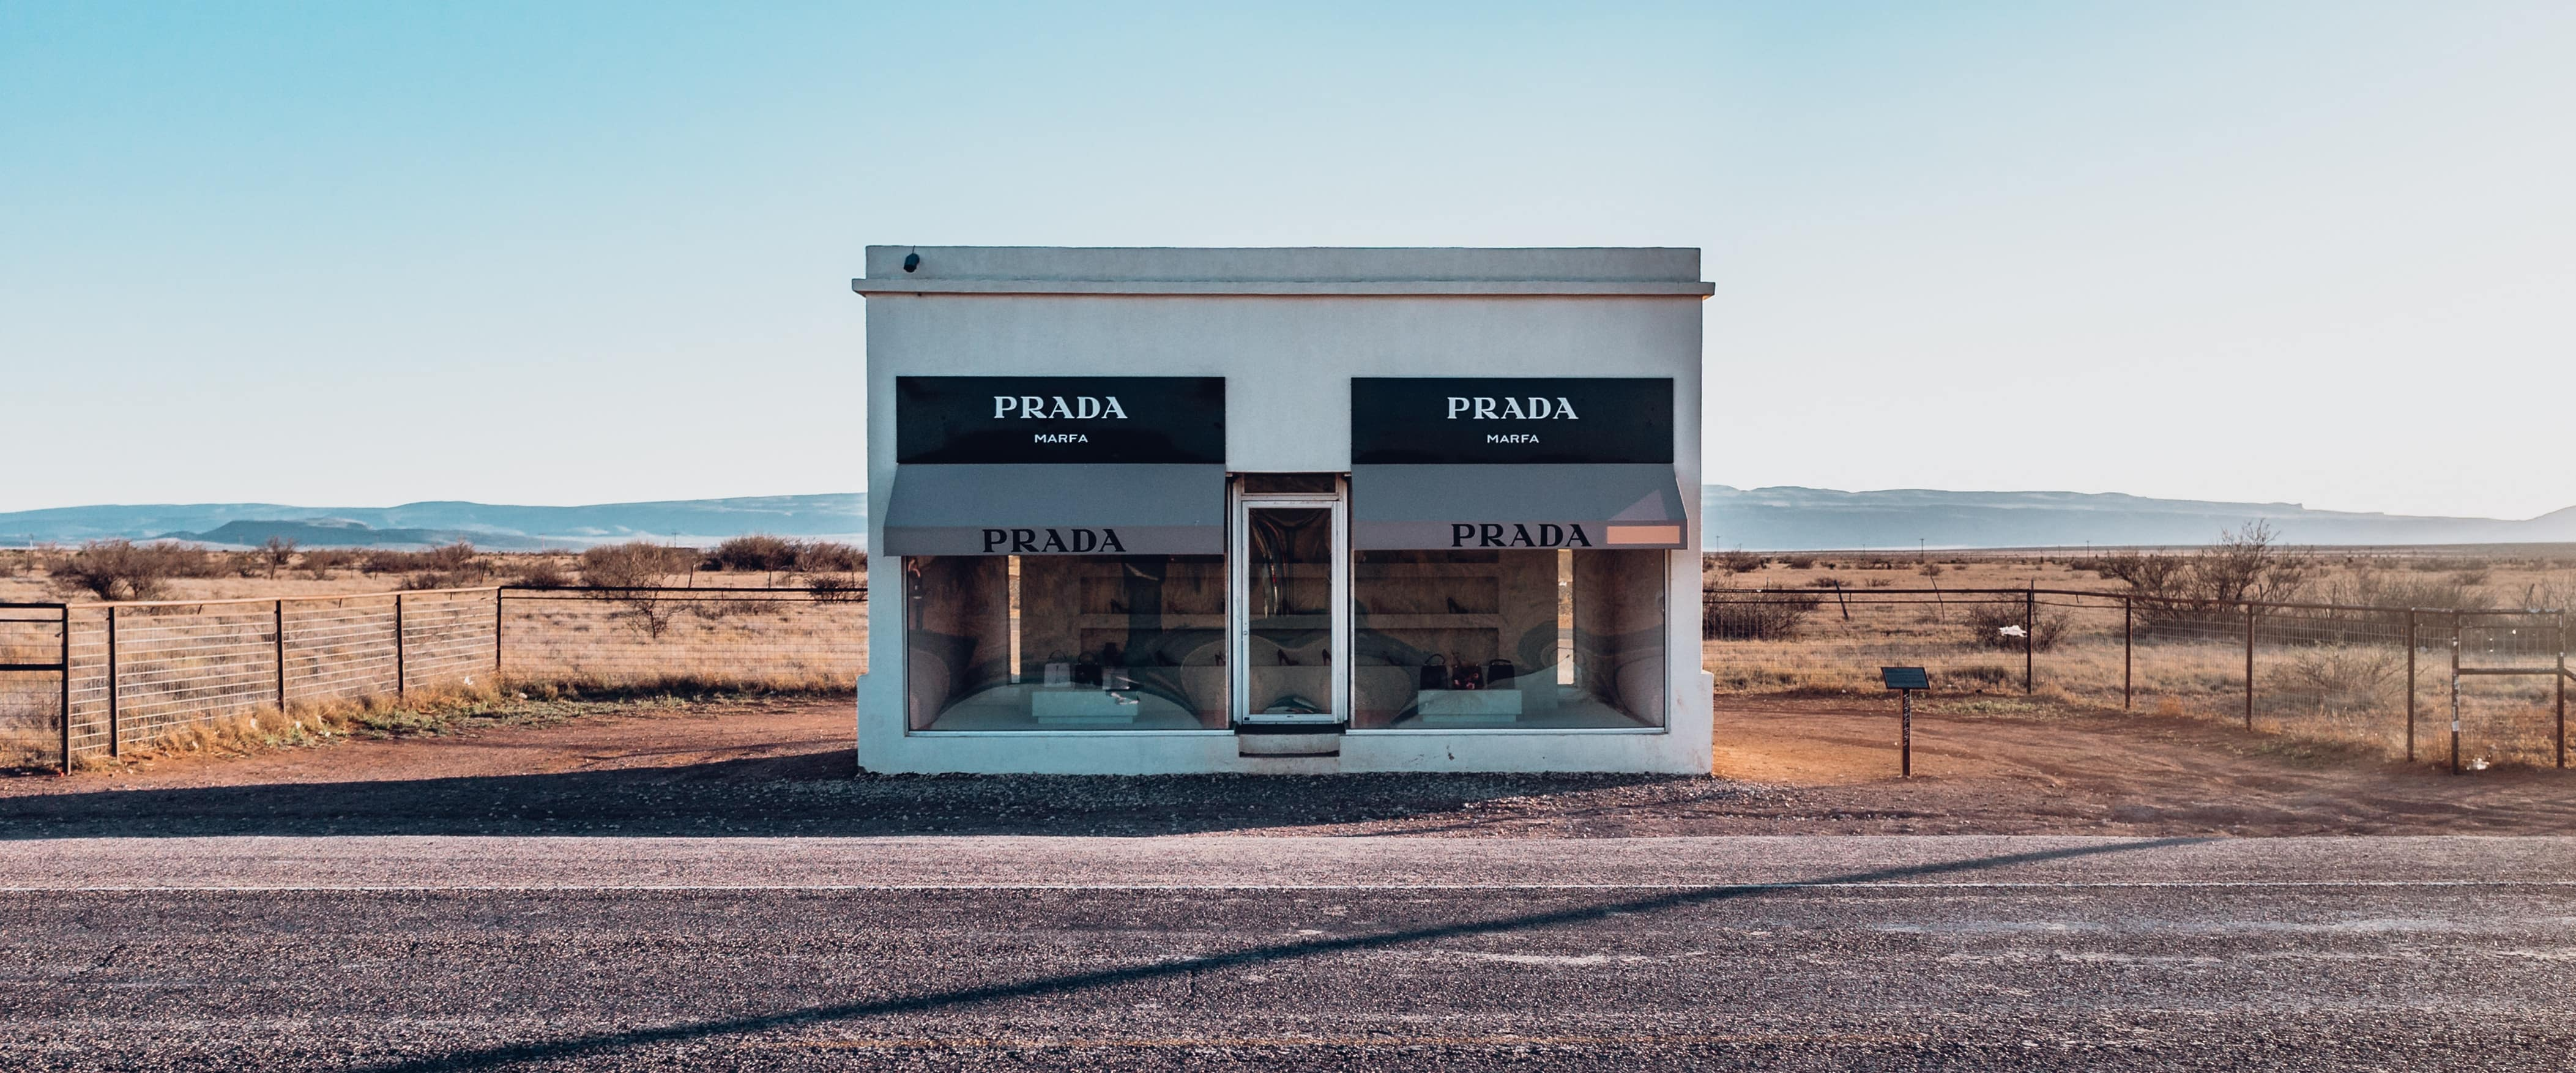 The iconic PRADA Marfa art installation sits along US-90 in west Texas.